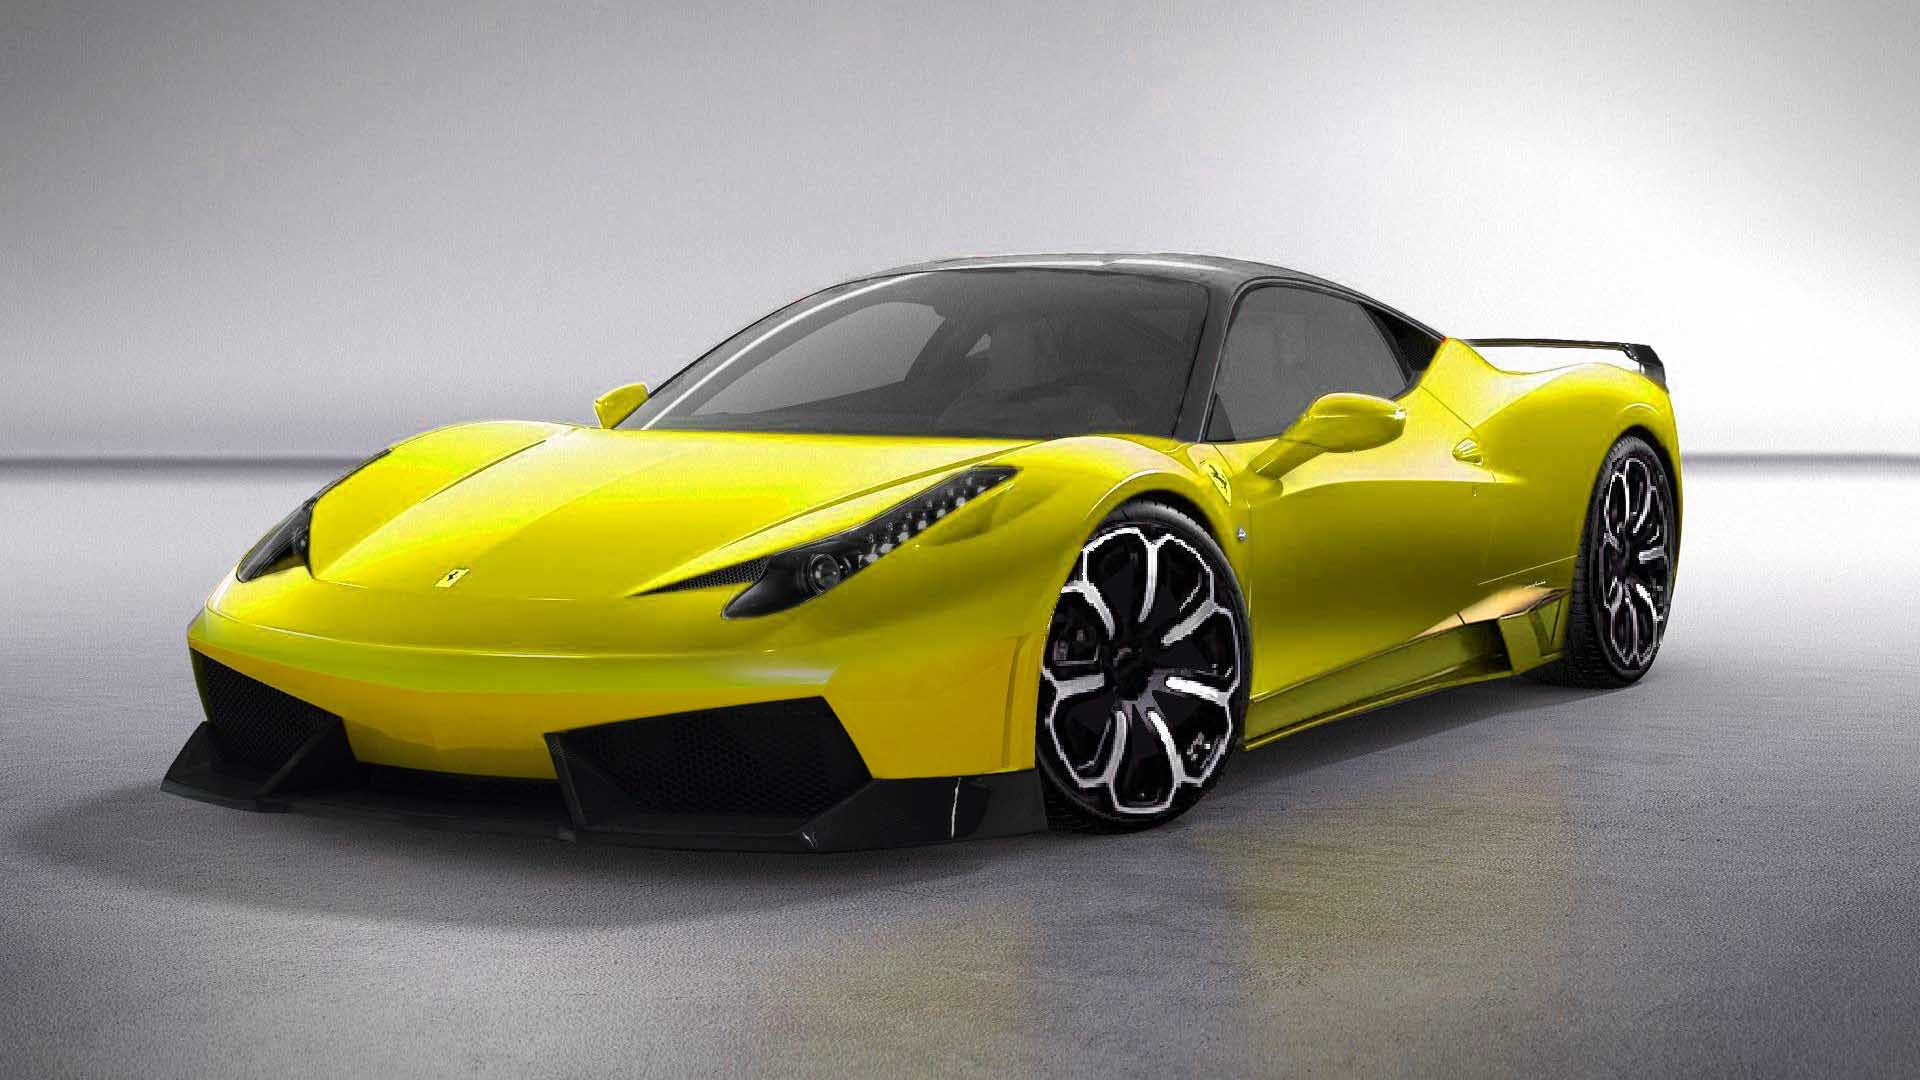 High Quality Exotic Car Wallpapers - Top Free High Quality ...